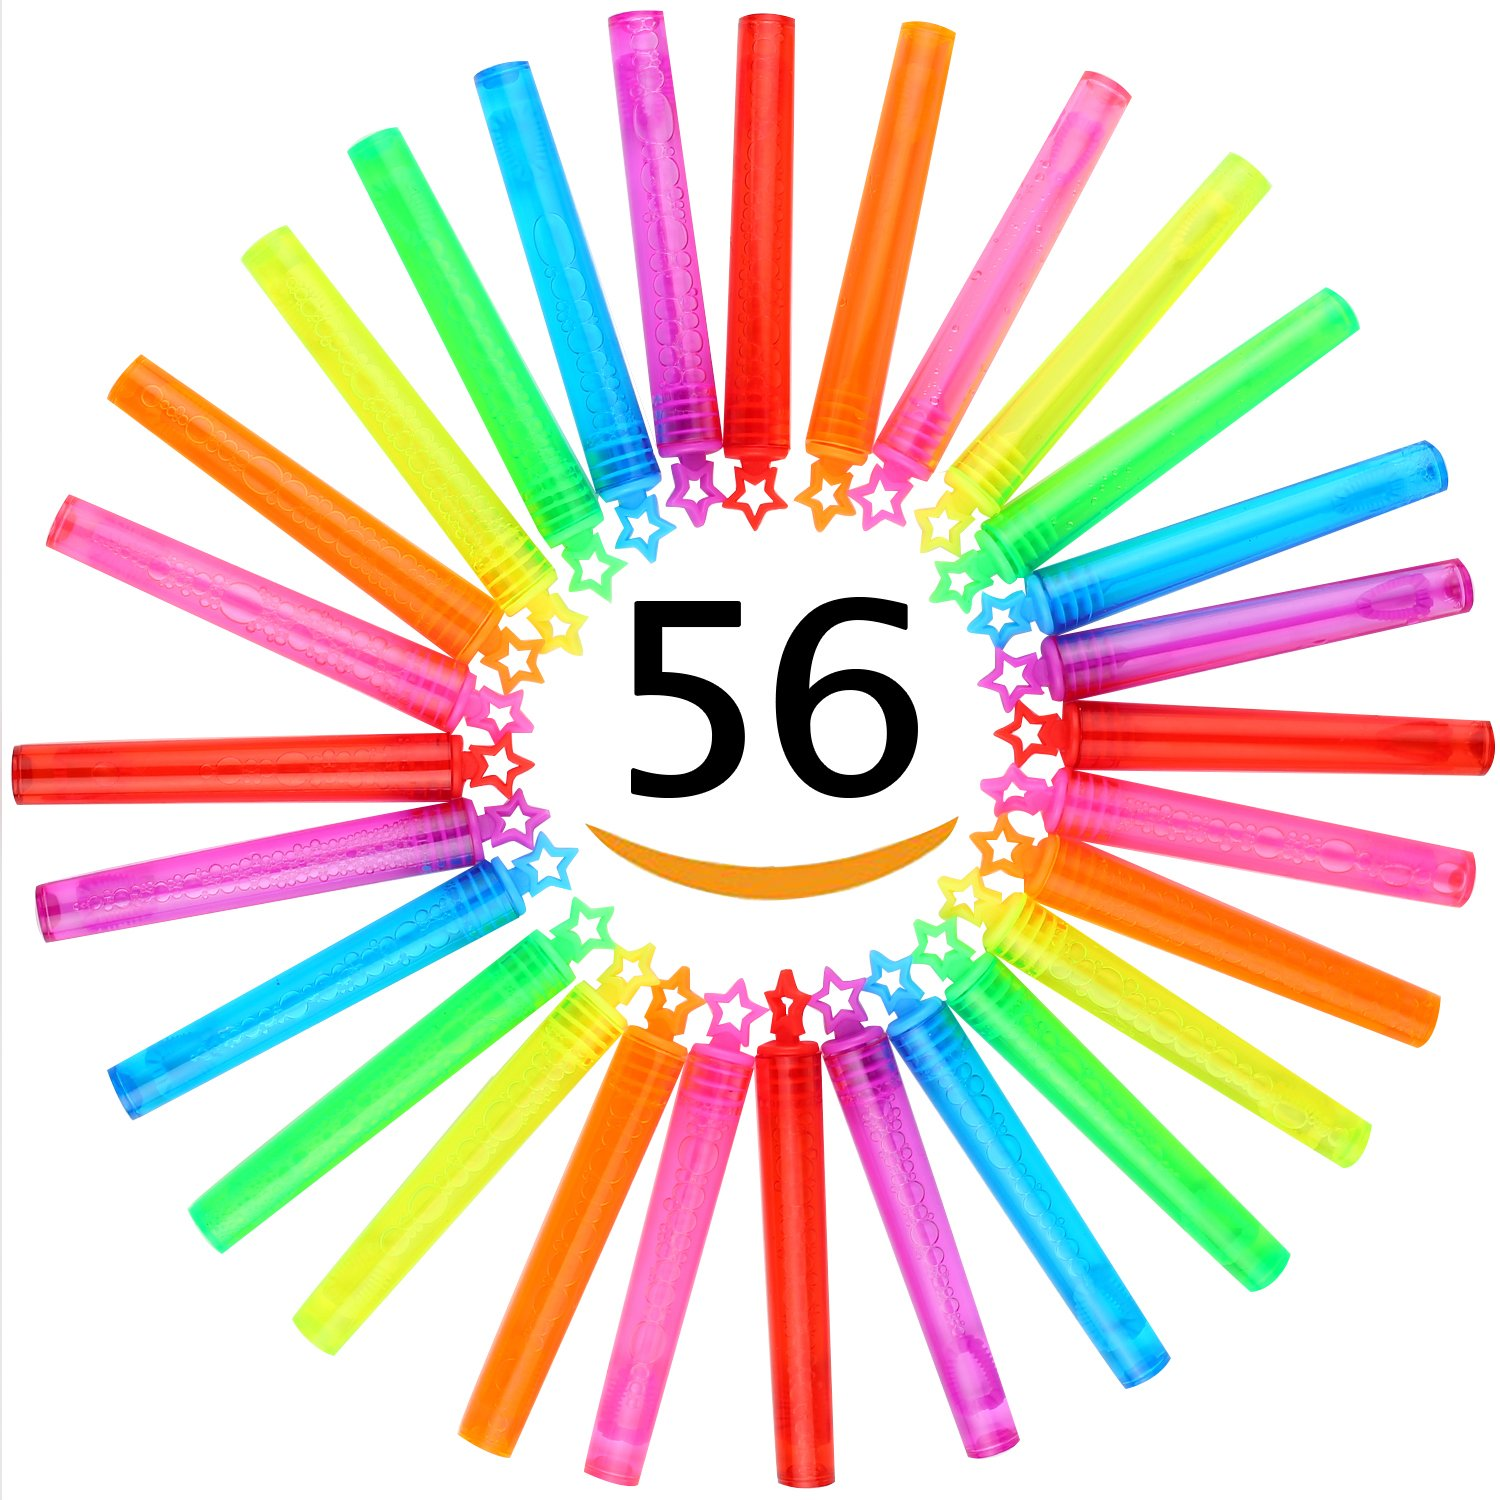 Bubble Wand, 56 Pcs Mini Star Bubble Wand Set(7 Colour), Non-toxic Smelless Bubble Toy For Kids Child Birthday Party Favor Wedding Summer Outdoor Activity Bathroom Bath Toys, 4 inch, by CHIMAGER by CHIMAGER